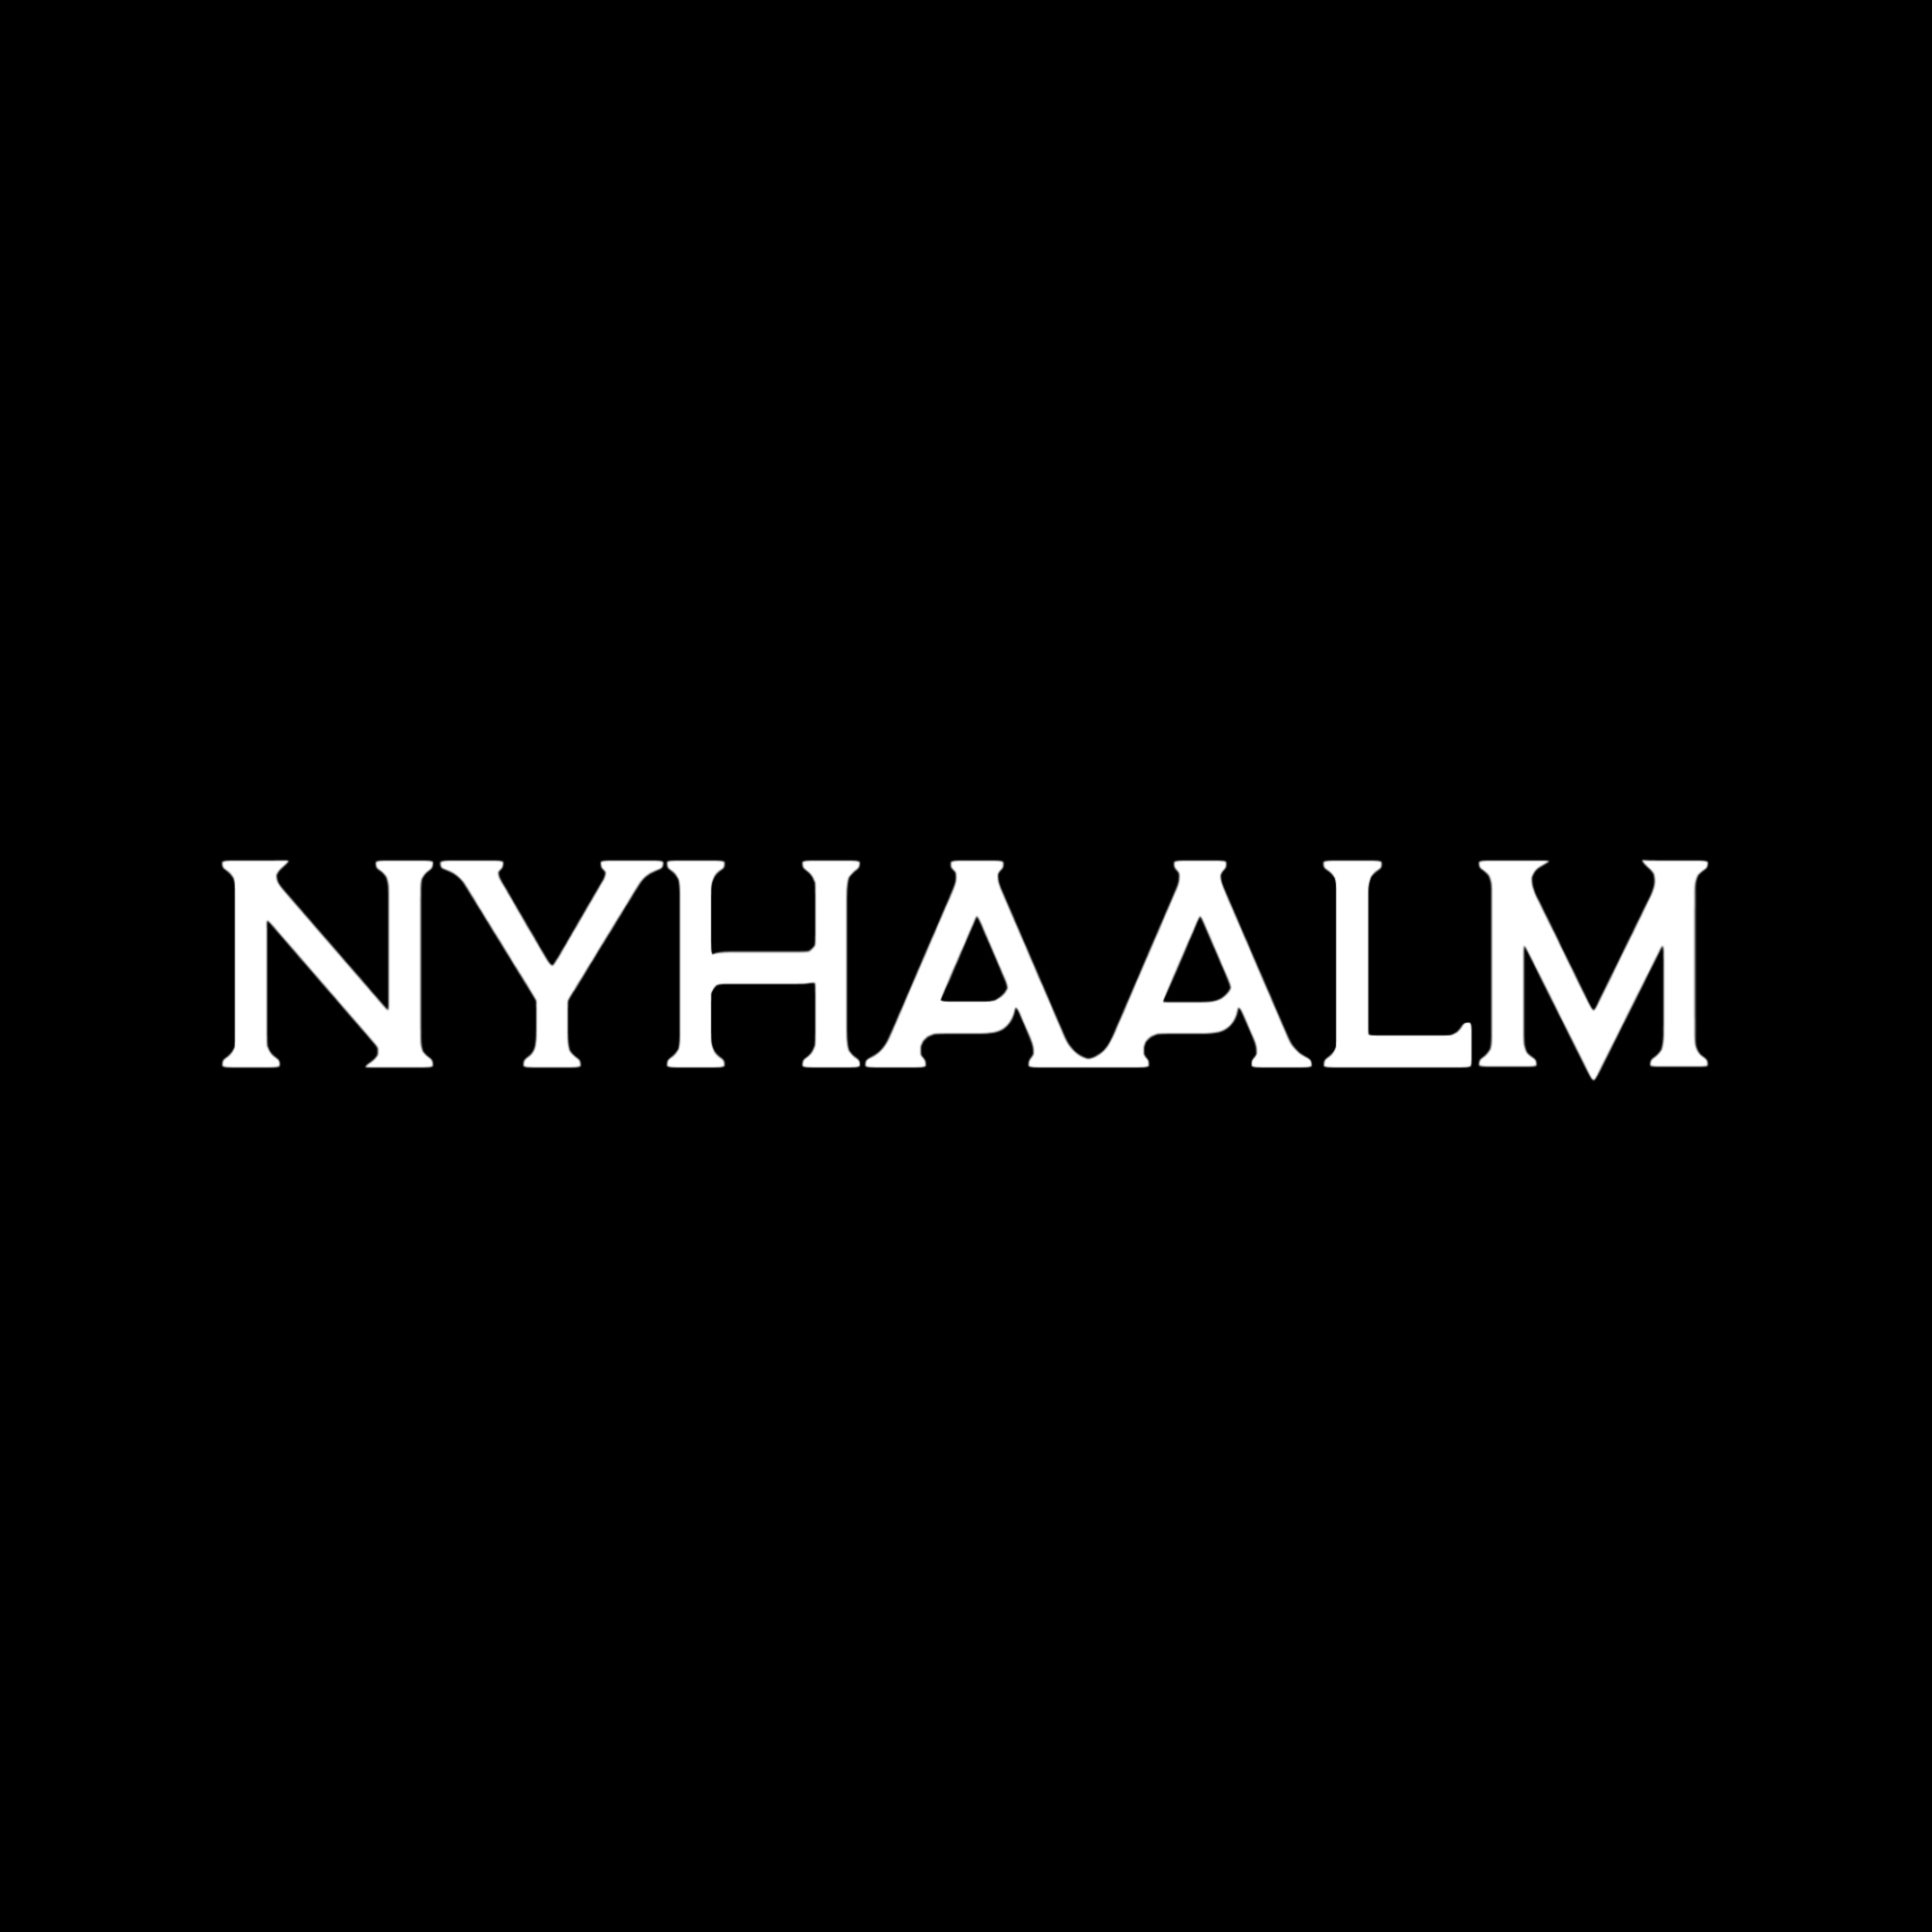 Nyhaalm logo white on black